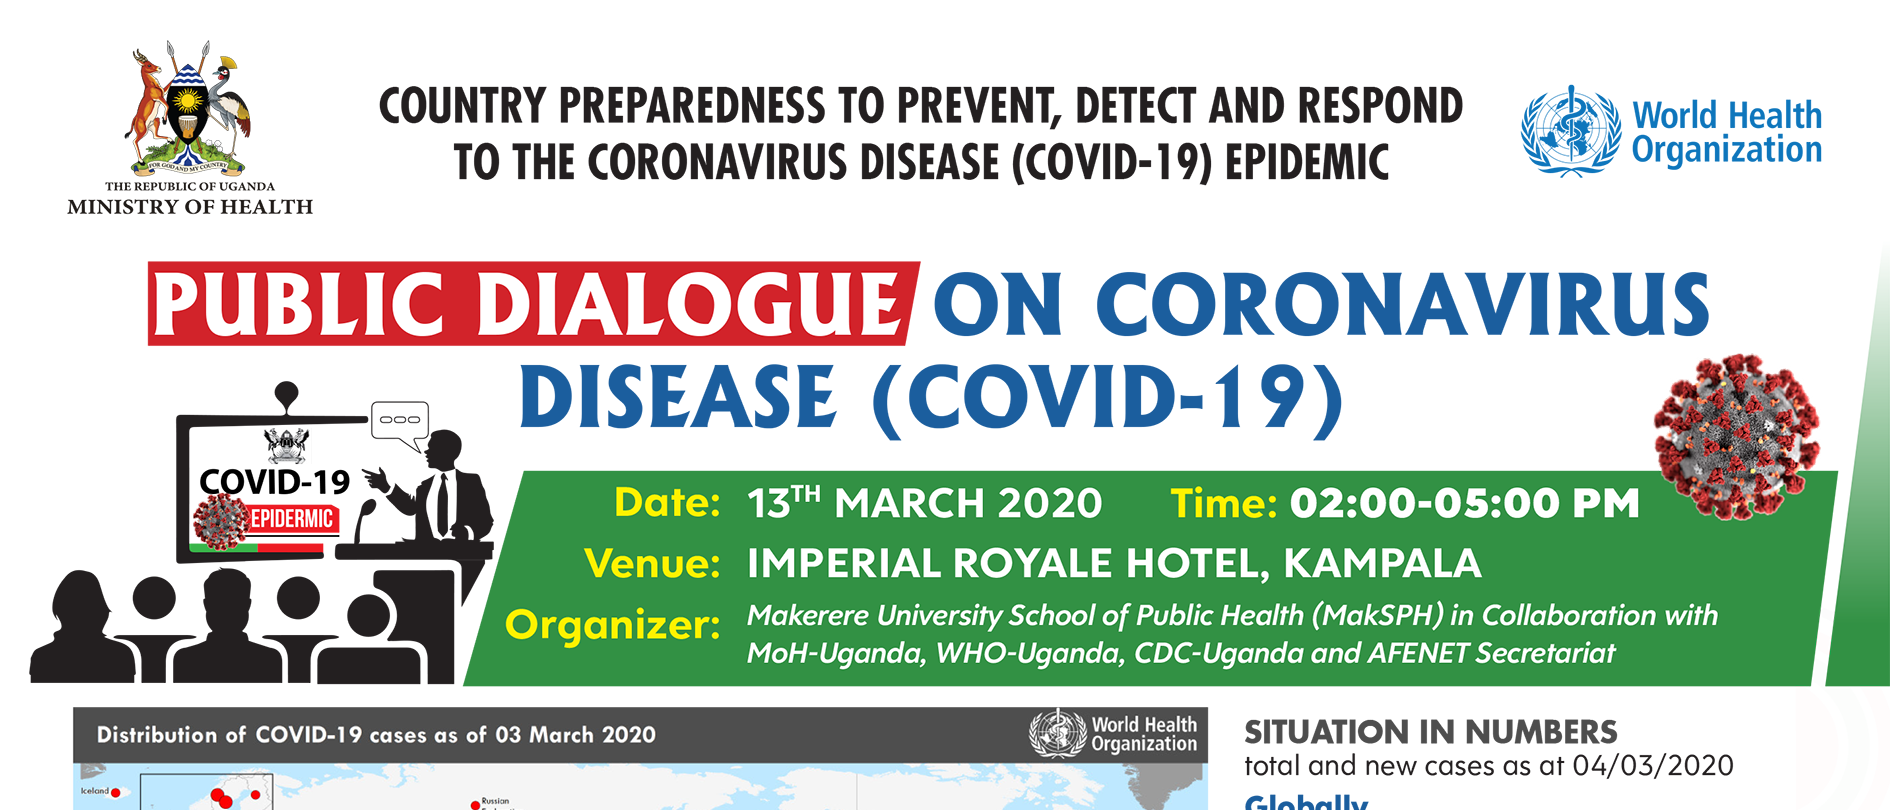 Public Dialogue on the Coronavirus Disease (COVID-19) organised by MakSPH in collaboration with MoH-Uganda, WHO-Uganda, CDC-Uganda and AFENET Secretariat, 13th March 2020, Imperial Royale Hotel, Kampala Uganda.